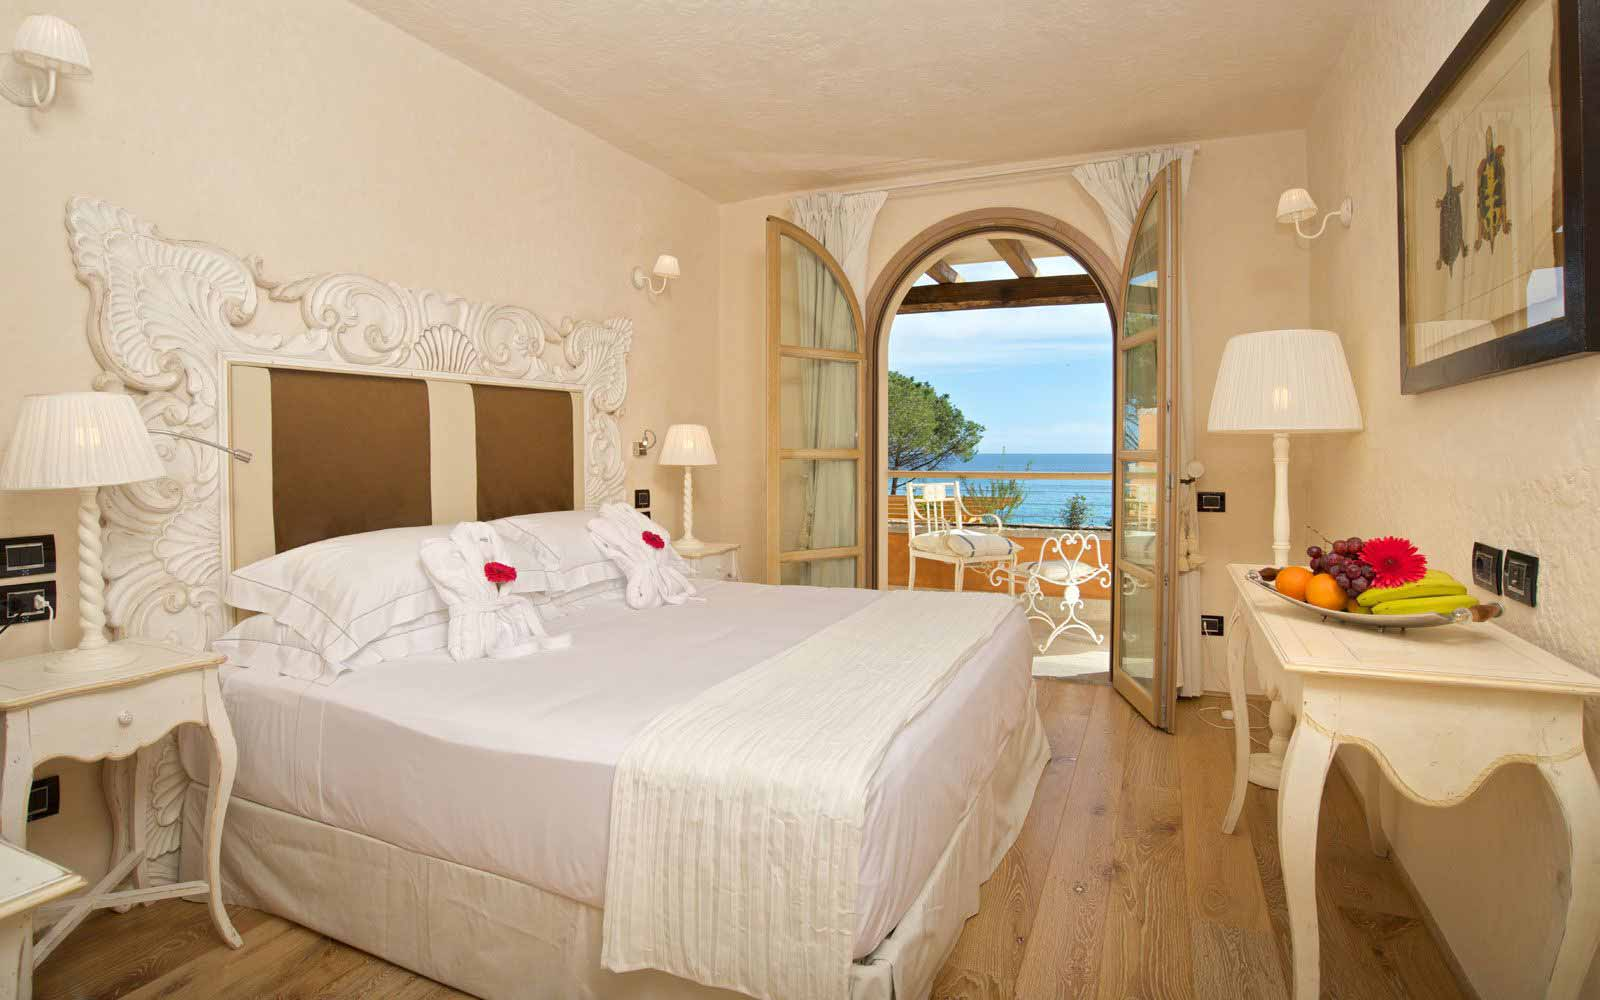 Superior room at theHotel Villa del Re